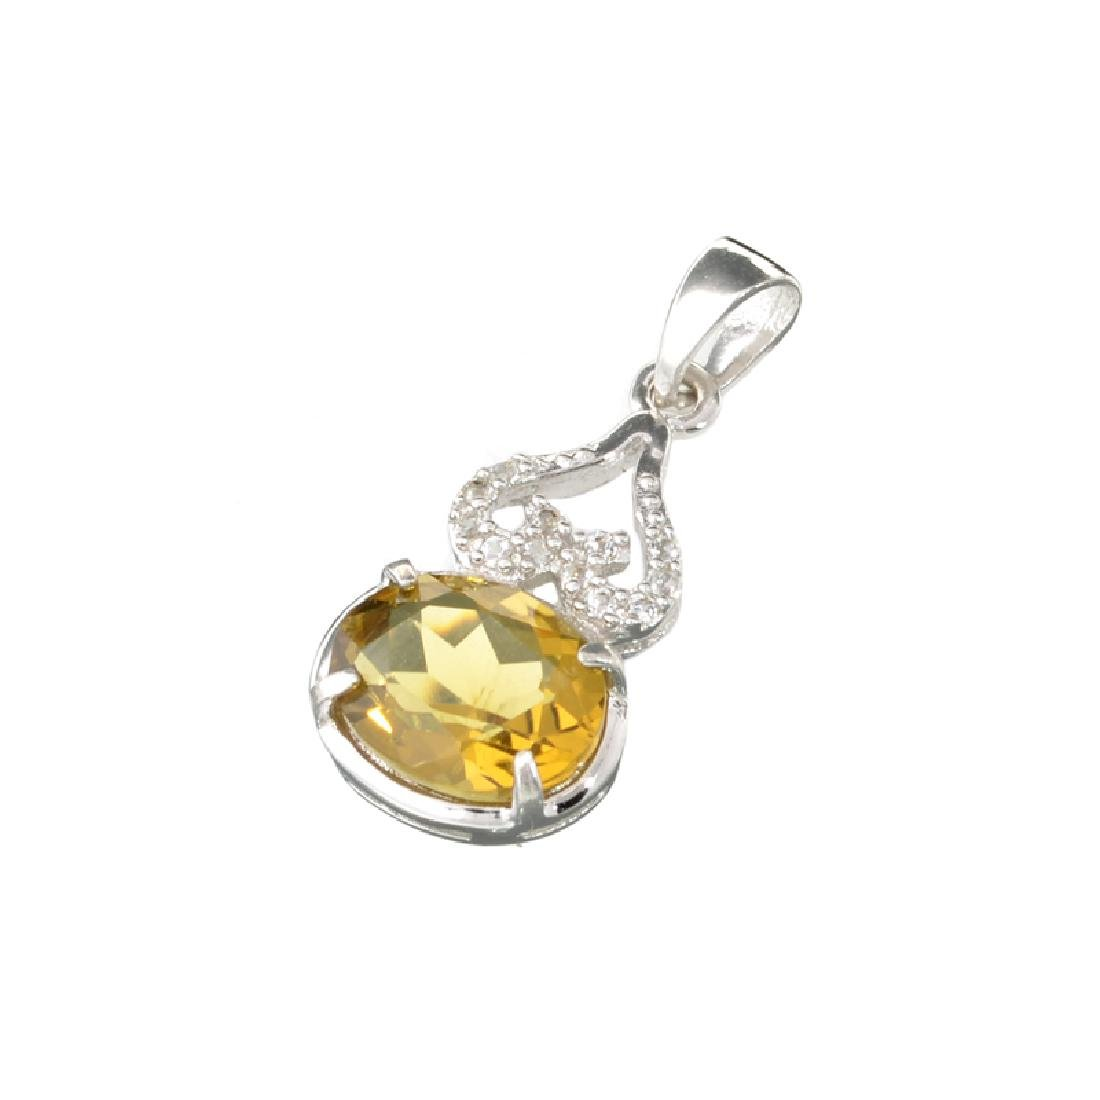 APP: 0.4k Fine Jewerly 2.00CT Oval Cut Citrine And